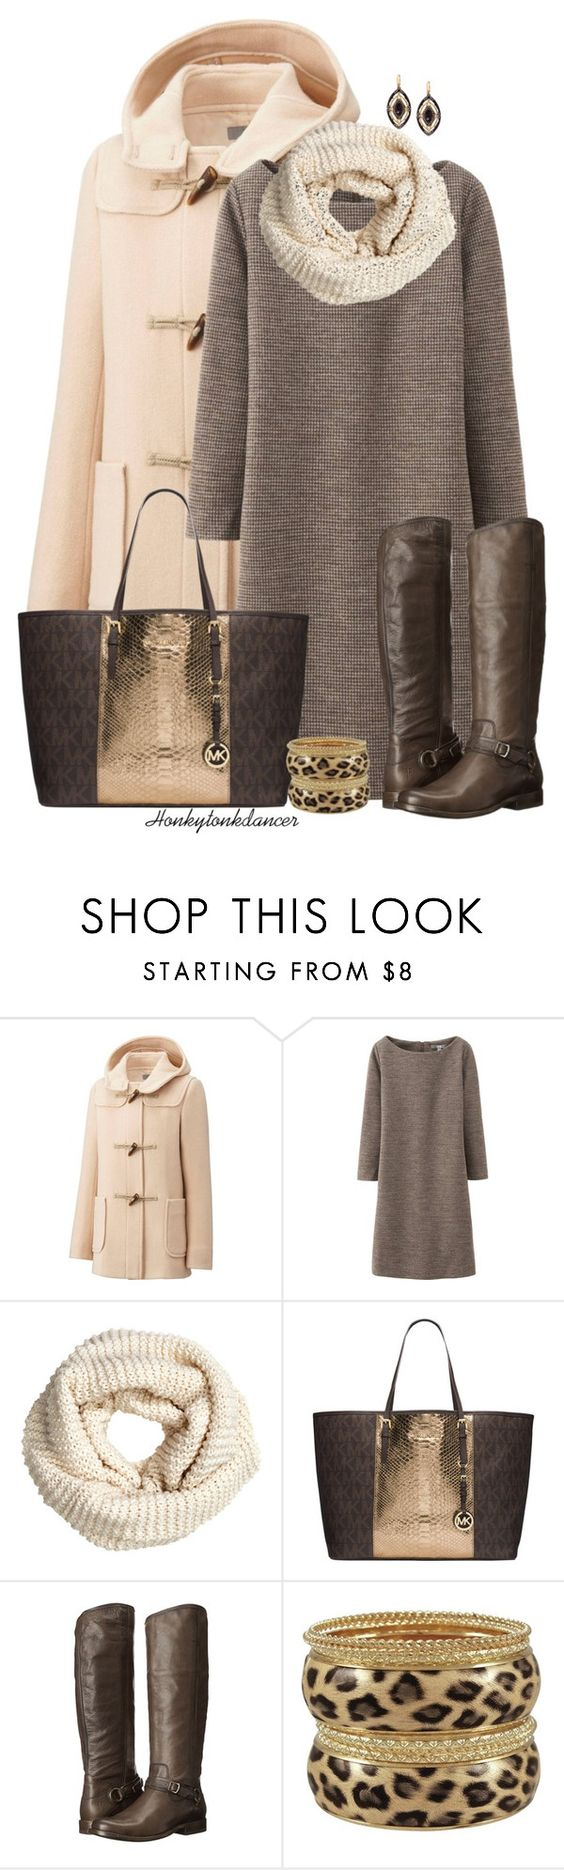 """""""Duffle Coat"""" by honkytonkdancer ❤ liked on Polyvore featuring Uniqlo, H&M, MICHAEL Michael Kors, Frye, michaelkors, fryeboots, sweaterdress and dufflecoat"""